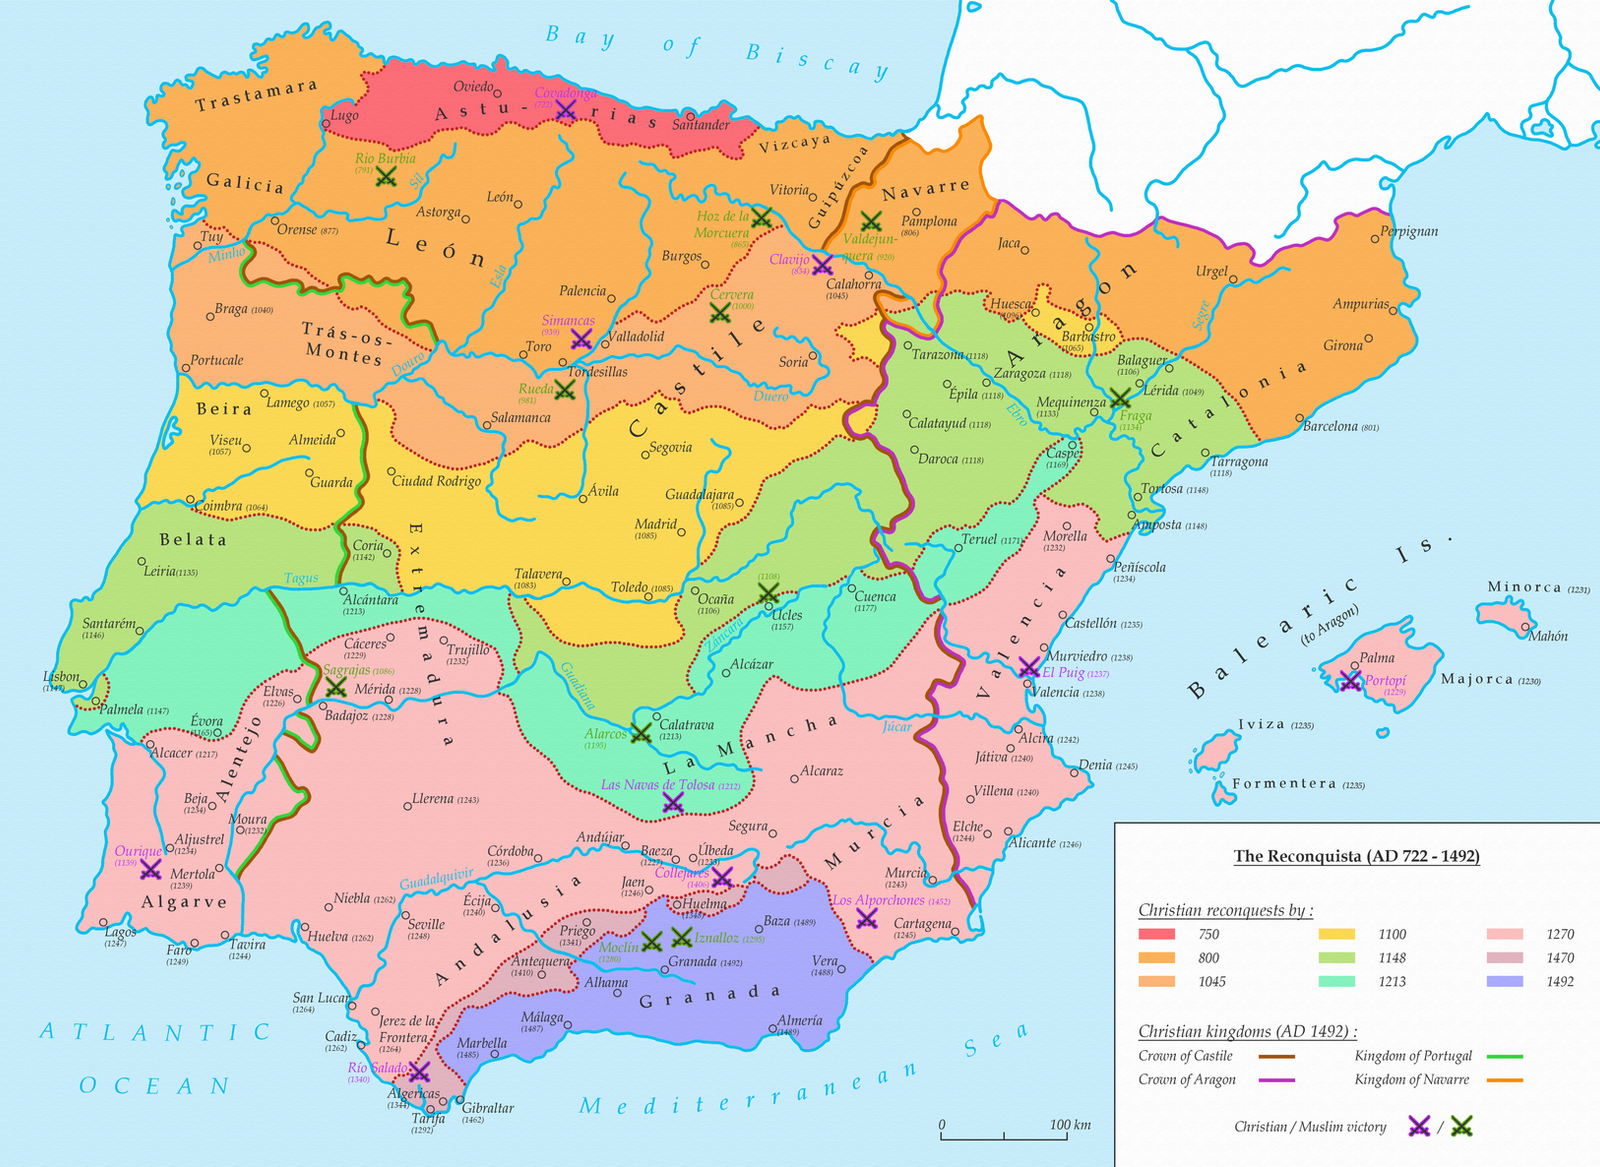 The Reconquista AD 722 1492 by undevicesimus on DeviantArt